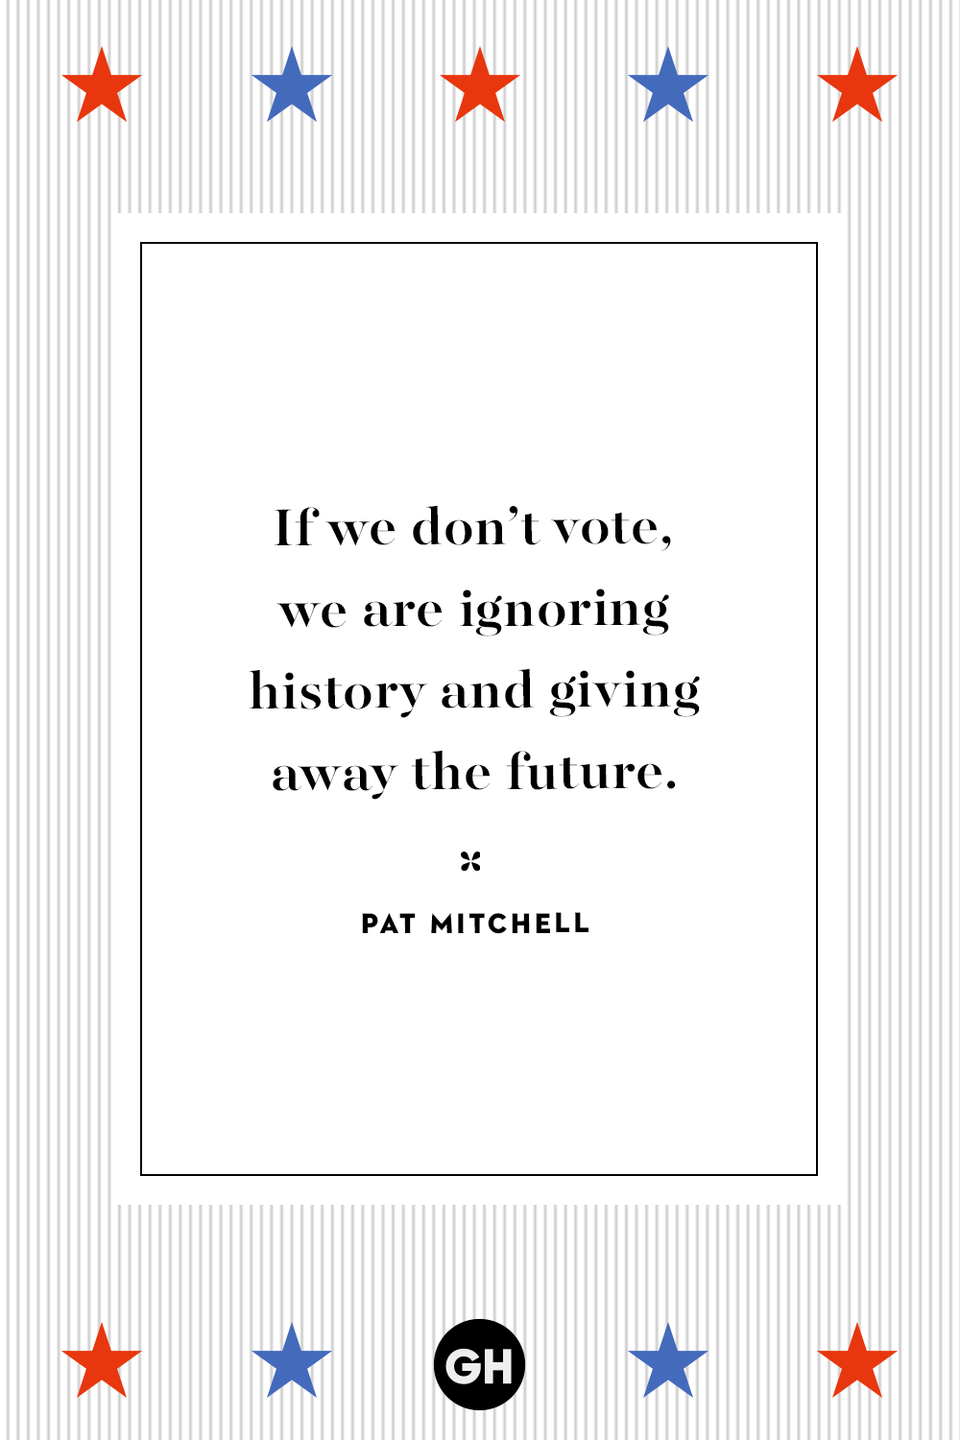 <p>If we don't vote, we are ignoring history and giving away the future.</p>